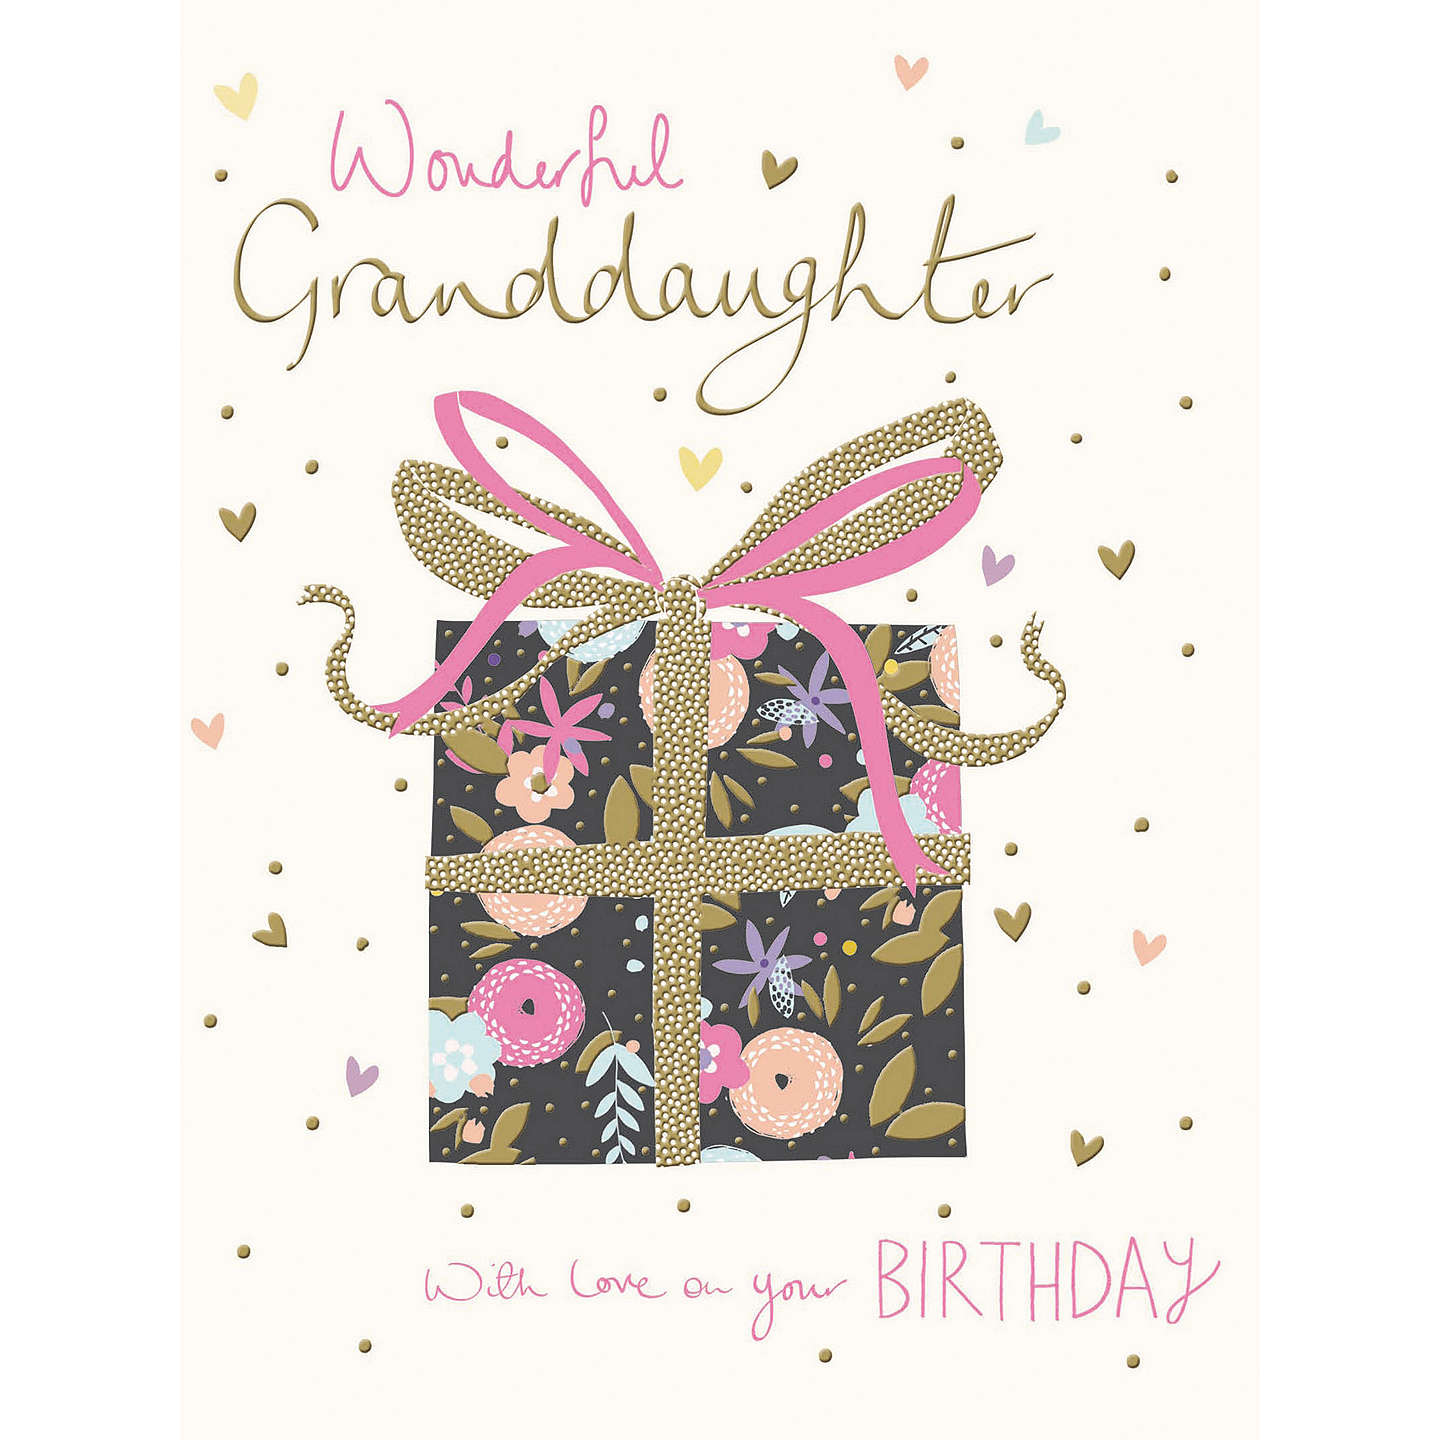 Woodmansterne wonderful granddaughter birthday card at john lewis buywoodmansterne wonderful granddaughter birthday card online at johnlewis bookmarktalkfo Gallery